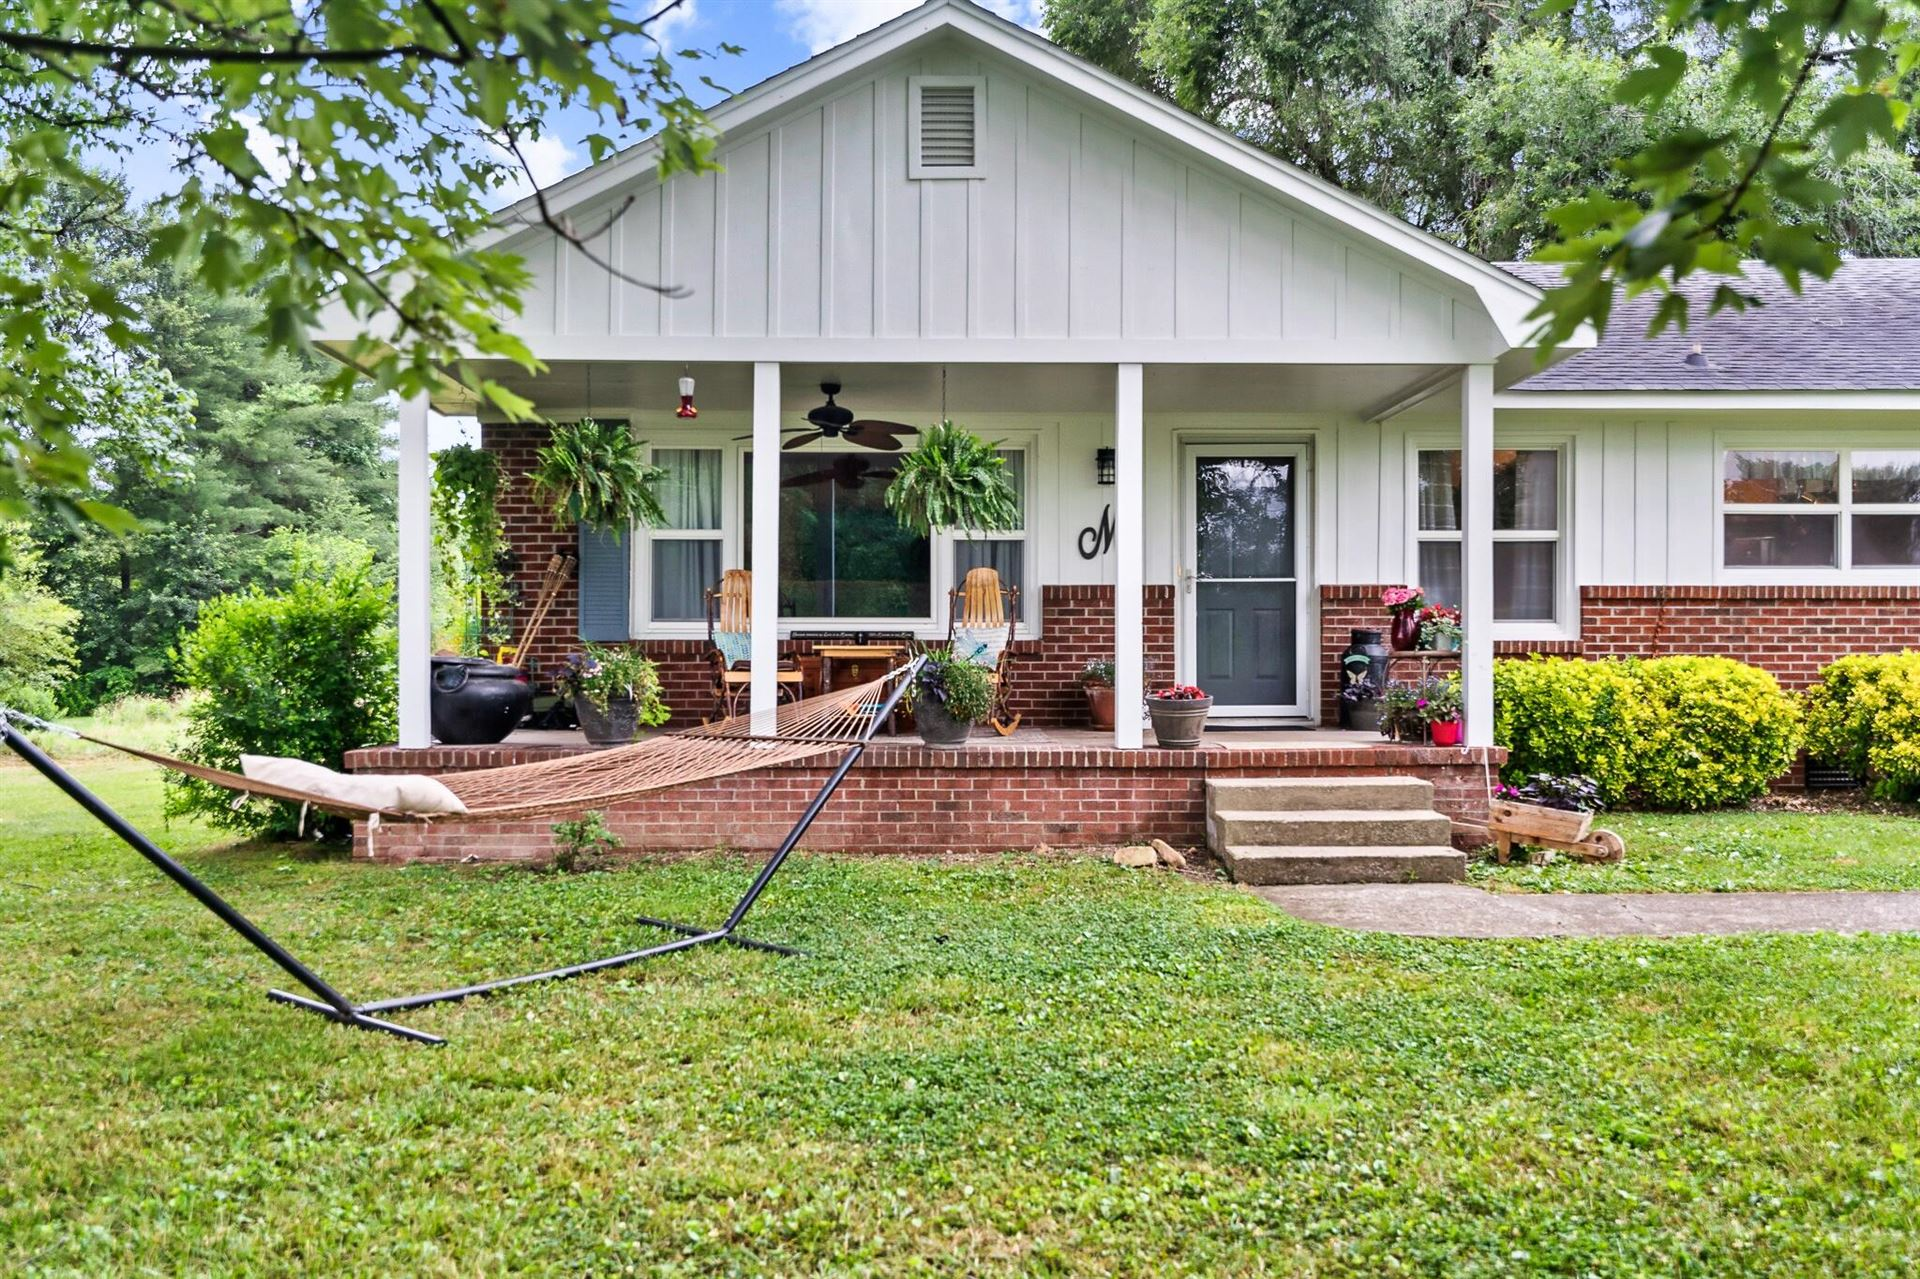 Photo of 1815 Holston River Rd, Knoxville, TN 37914 (MLS # 1155058)